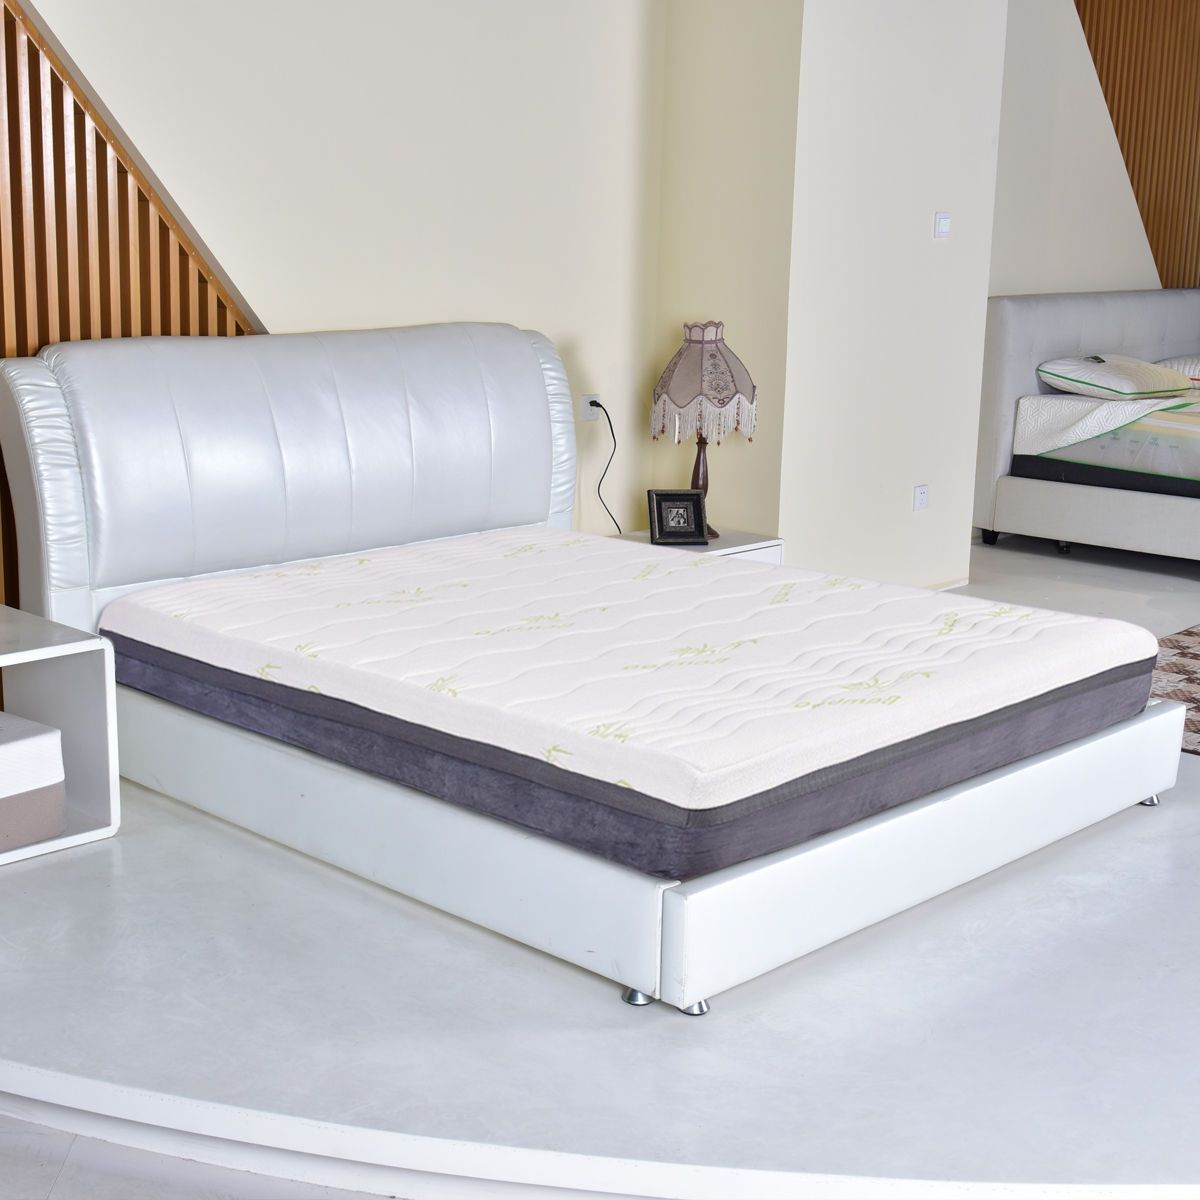 Queen Size 10 Bamboo Cover Memory Foam Mattress With Images